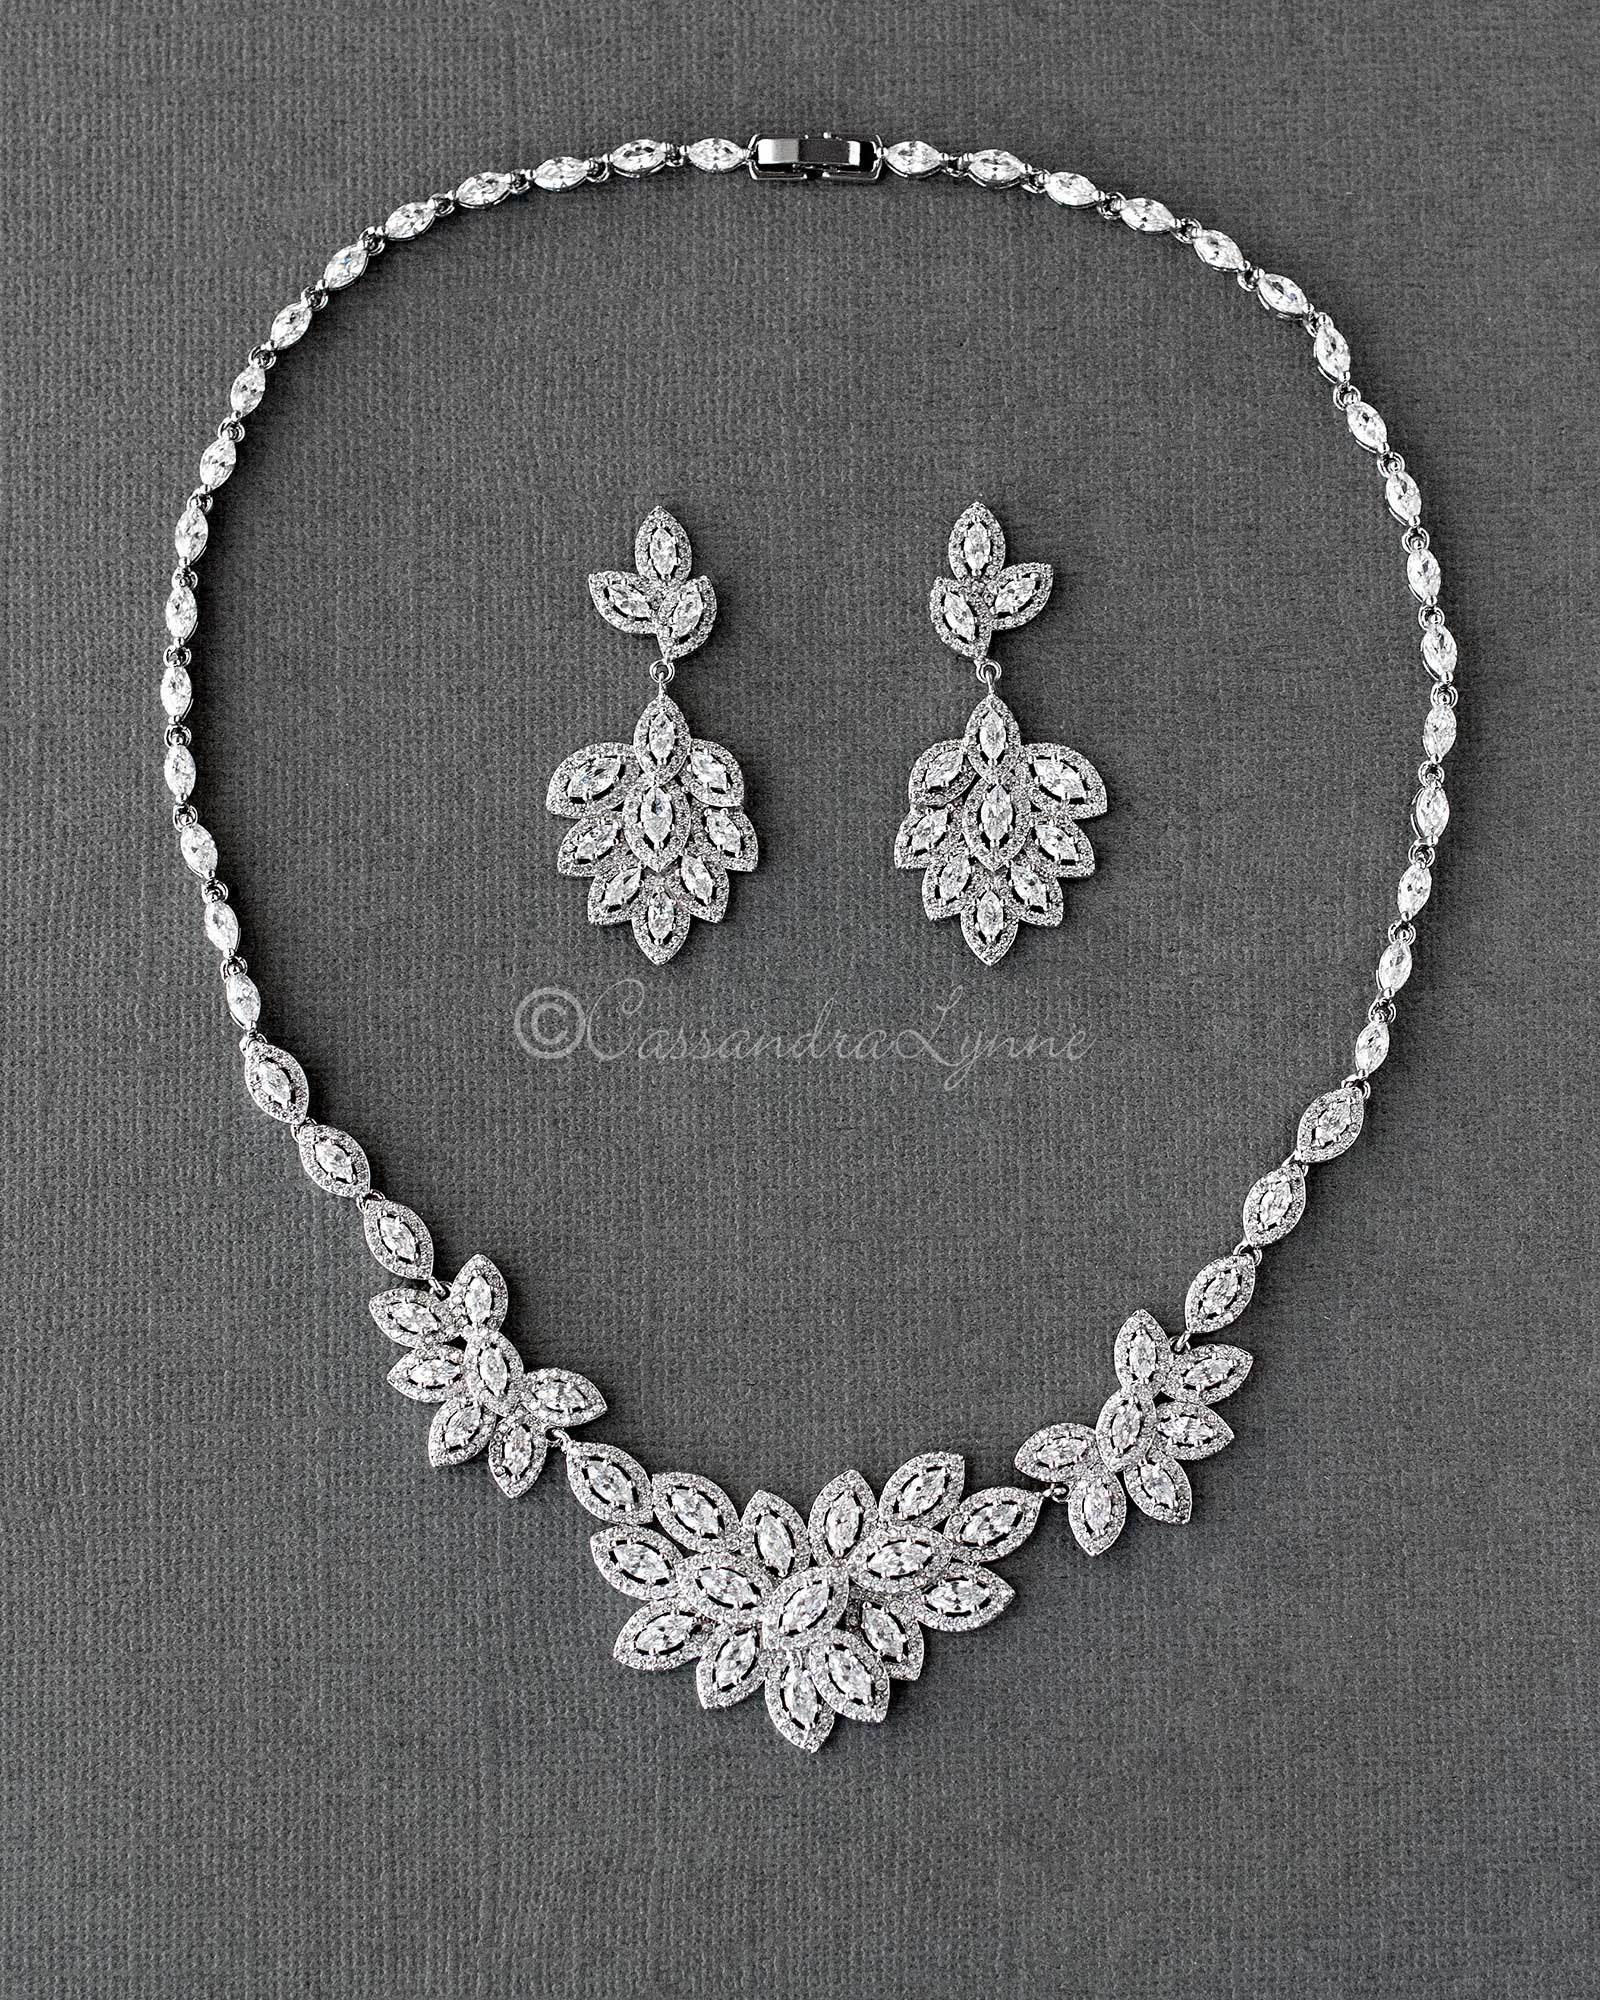 Pave Leaf Cluster Wedding Necklace and Earrings